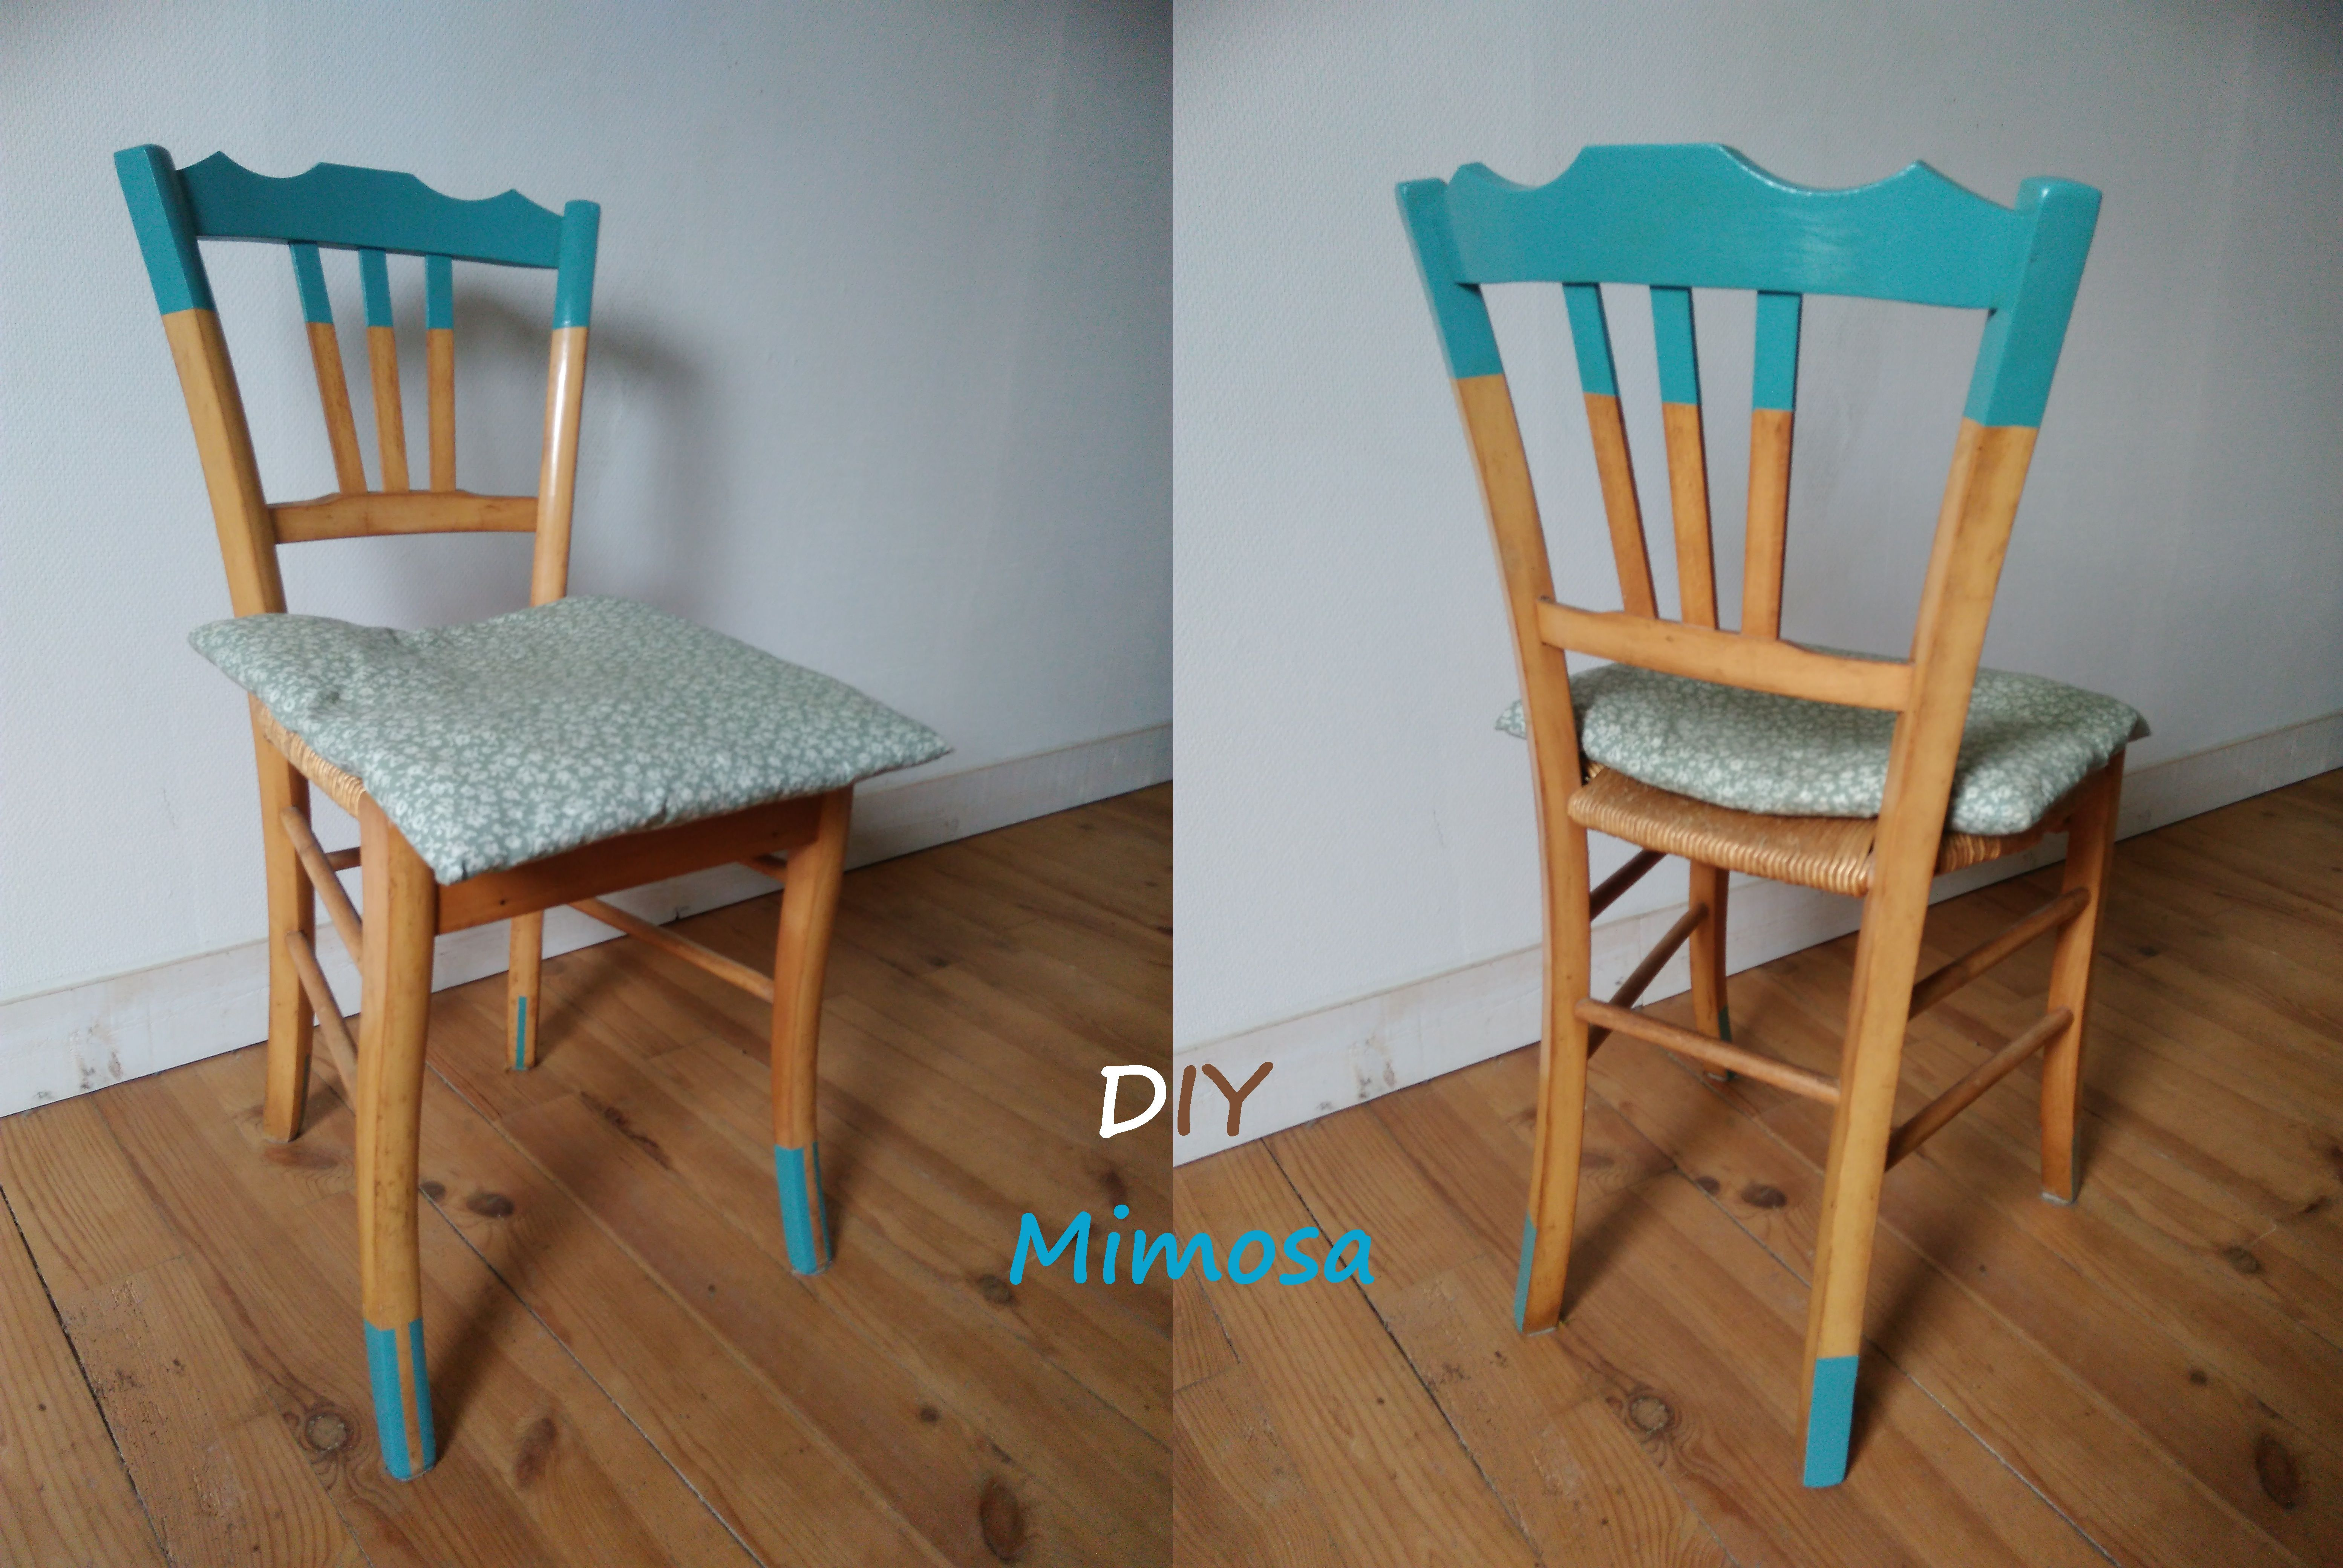 Chaise Paillee Relookee Chaise Paille Peinte Relooking Meuble Diy Vintage Relooking Meuble Relooking De Chaise Relooking De Mobilier